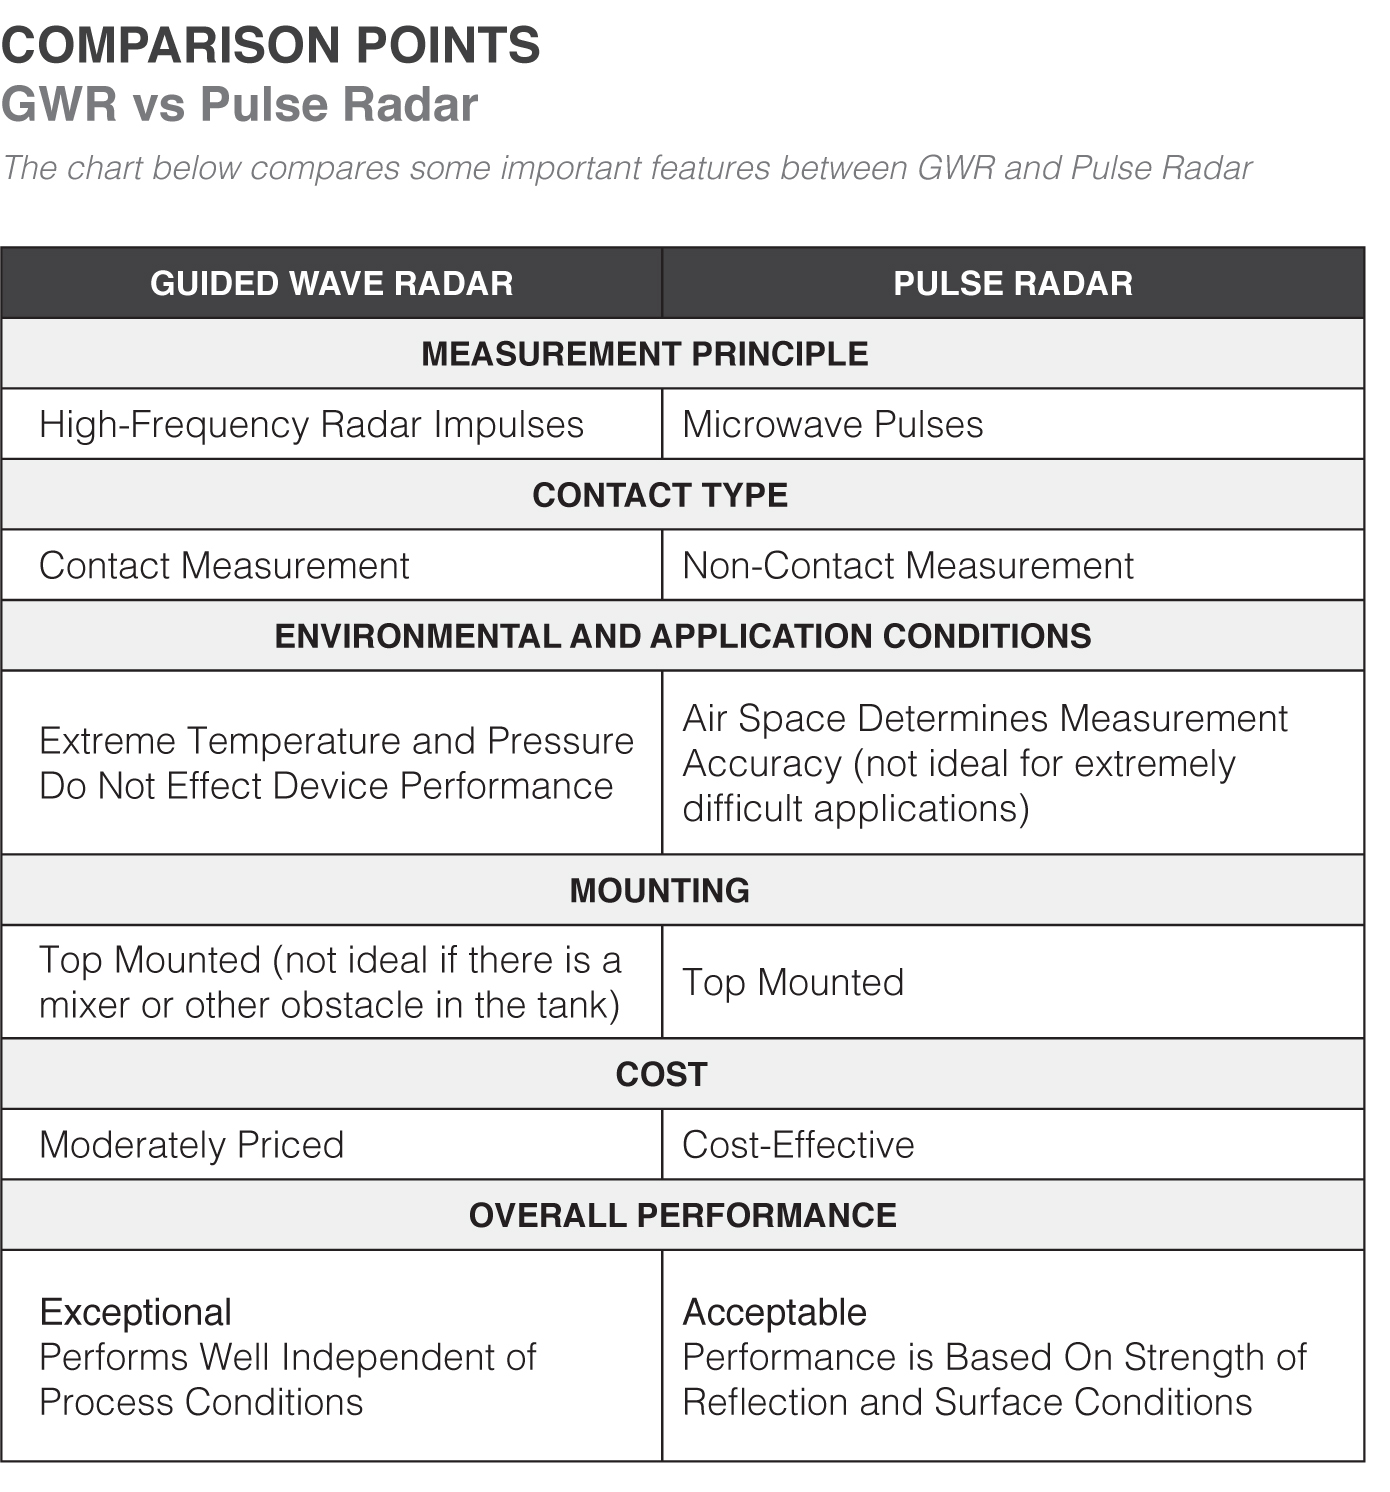 GWR vs Pulse Radar White Paper